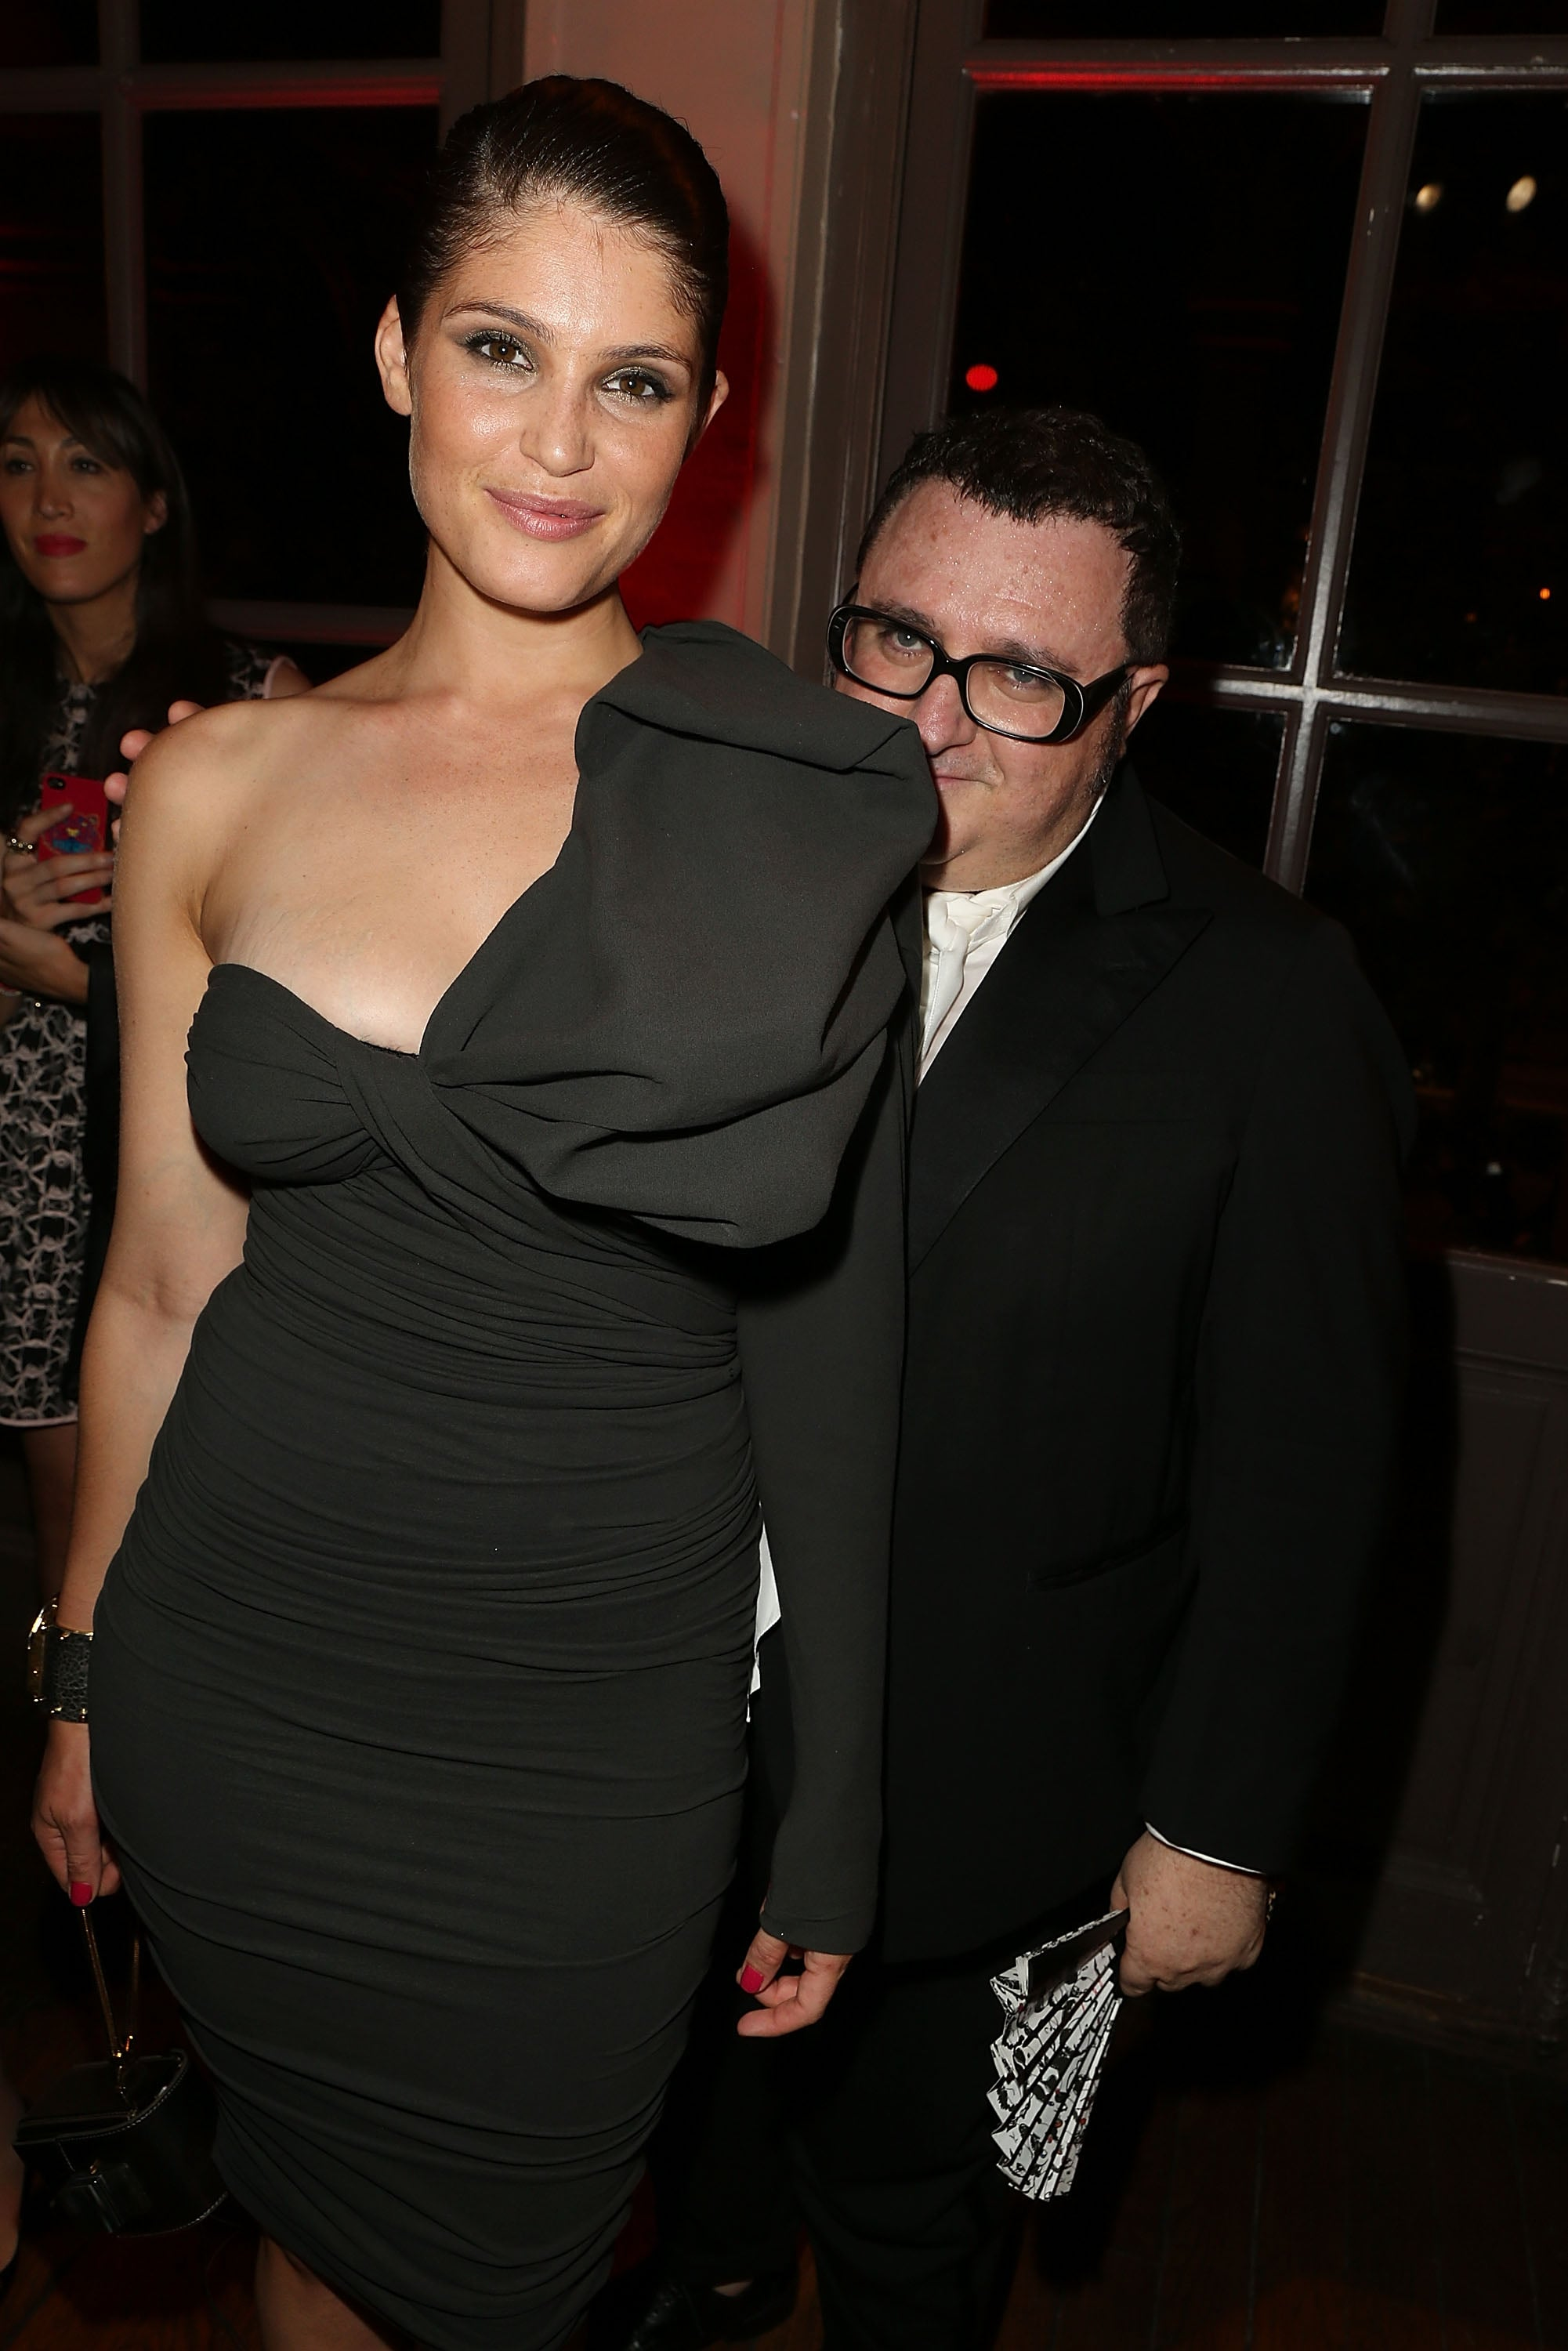 Peekaboo, we see you, Alber Elbaz — though Gemma Arterton's bow does make for crafty camouflage.